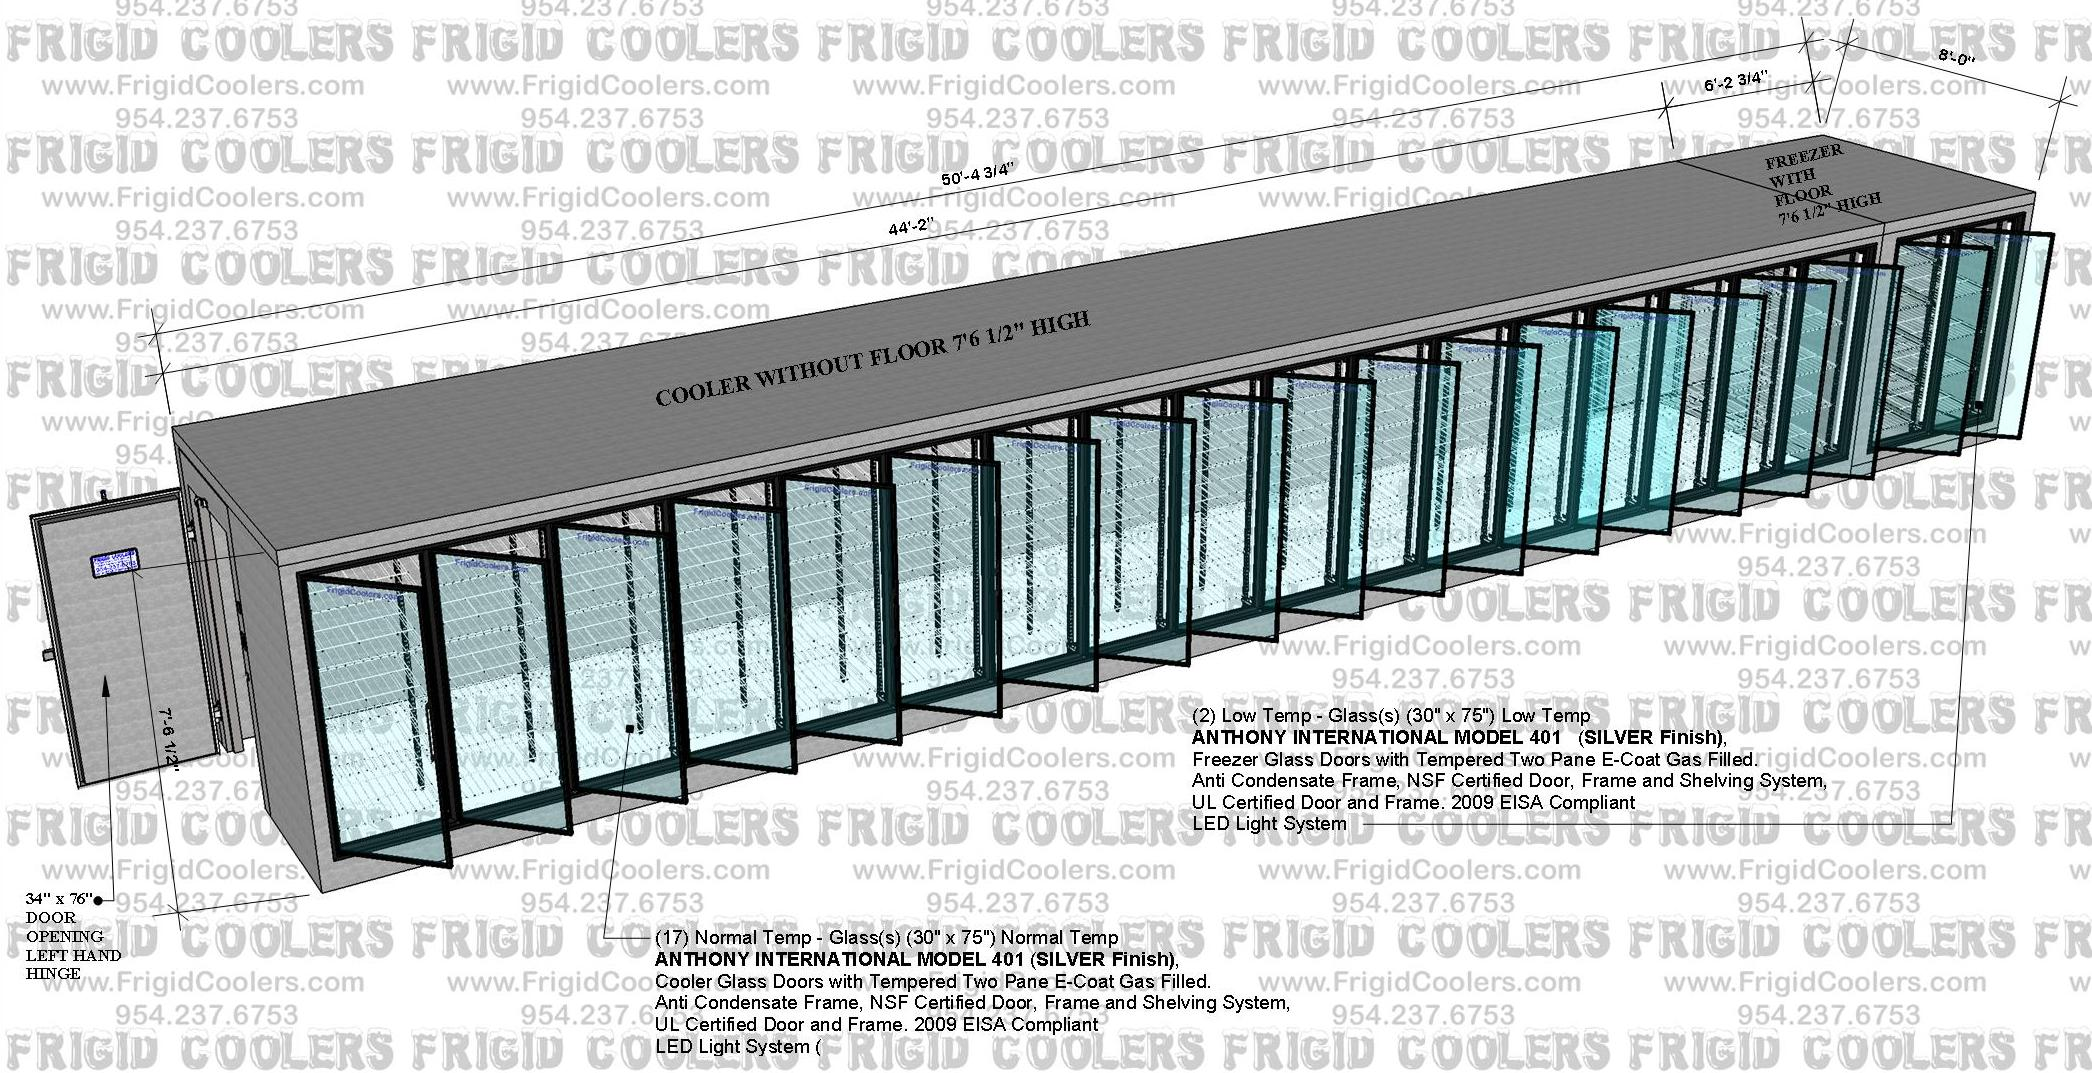 DISPLAY GLASS DOOR COOLER AND FREEZER 8X50-4X7-6 17-COOLER DOORS AND 2- FREEZER DOORS  (3)